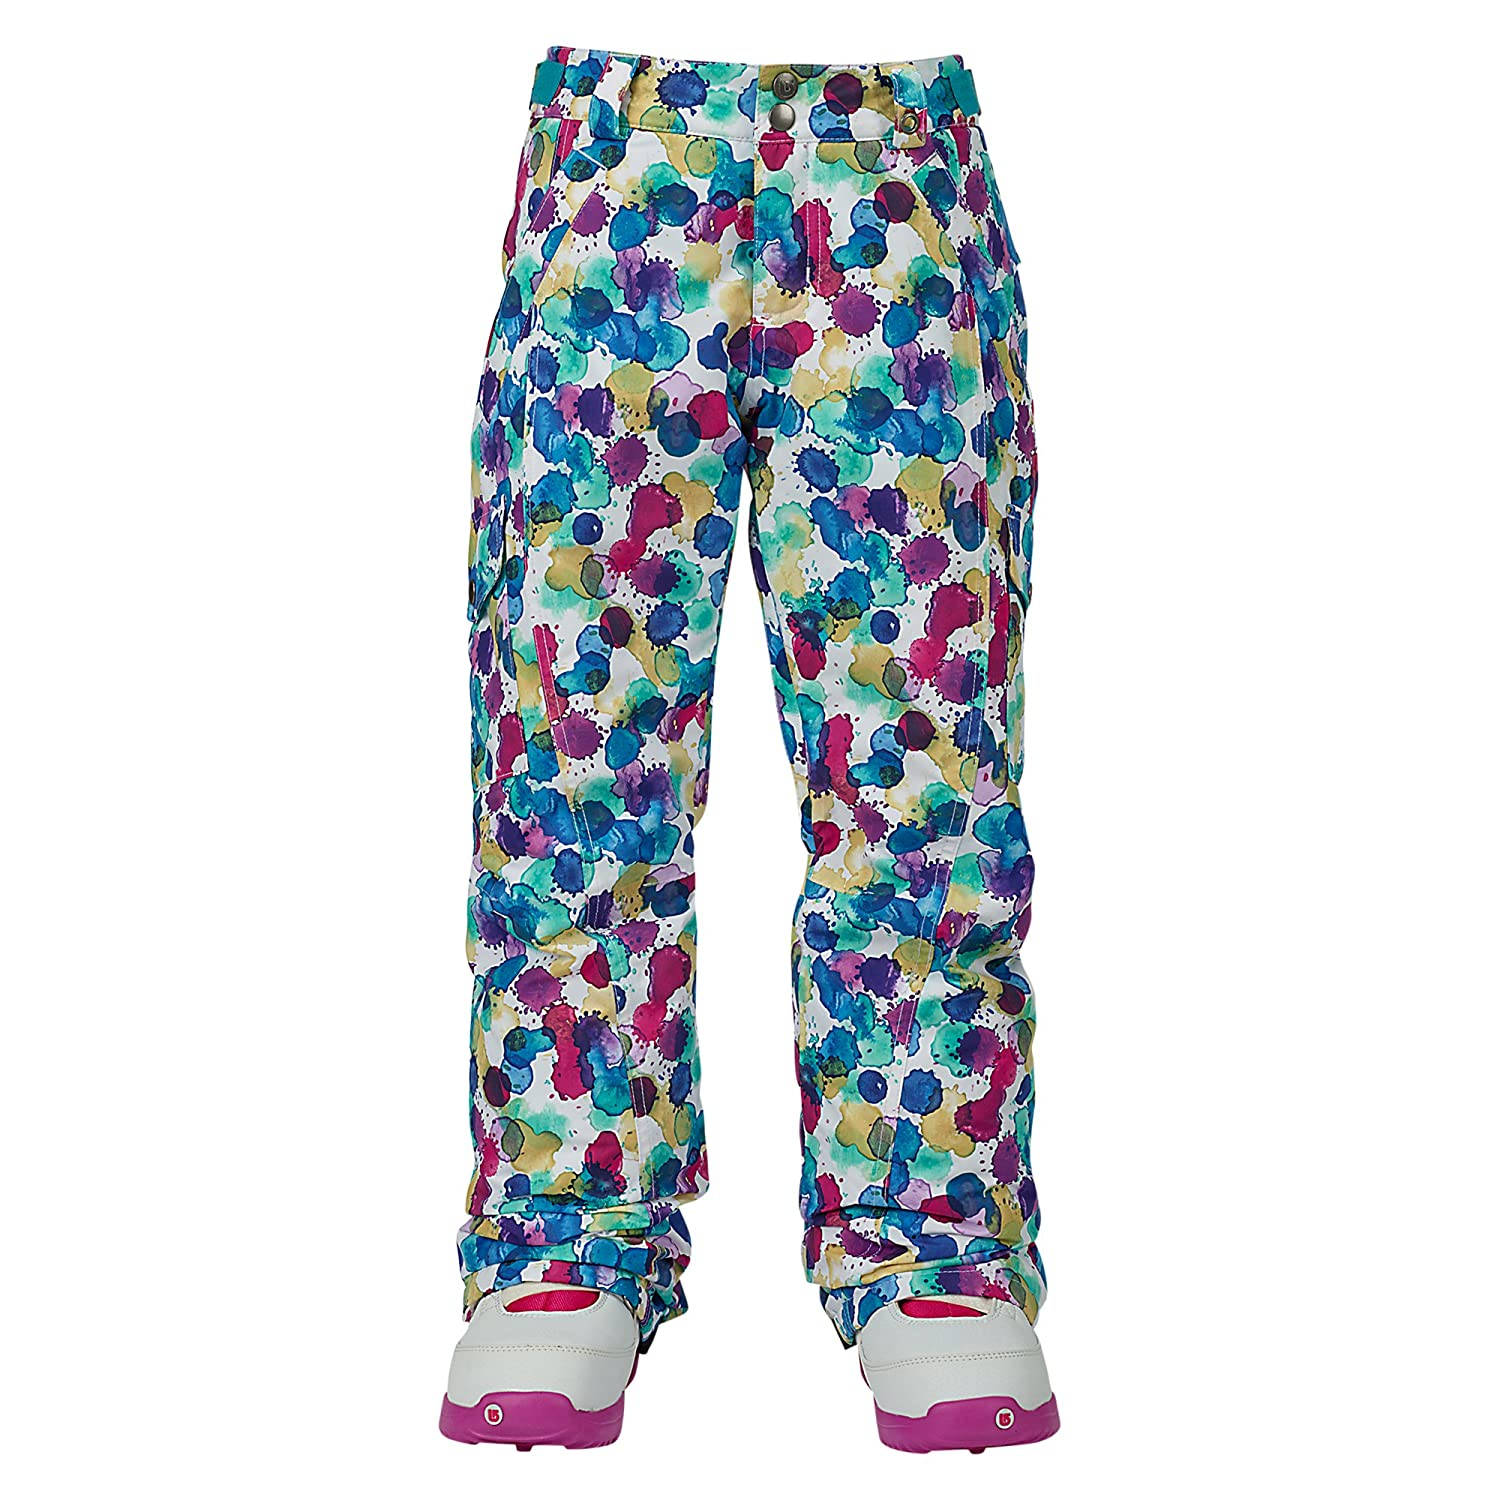 Burton Youth Girls Elite Cargo Pants